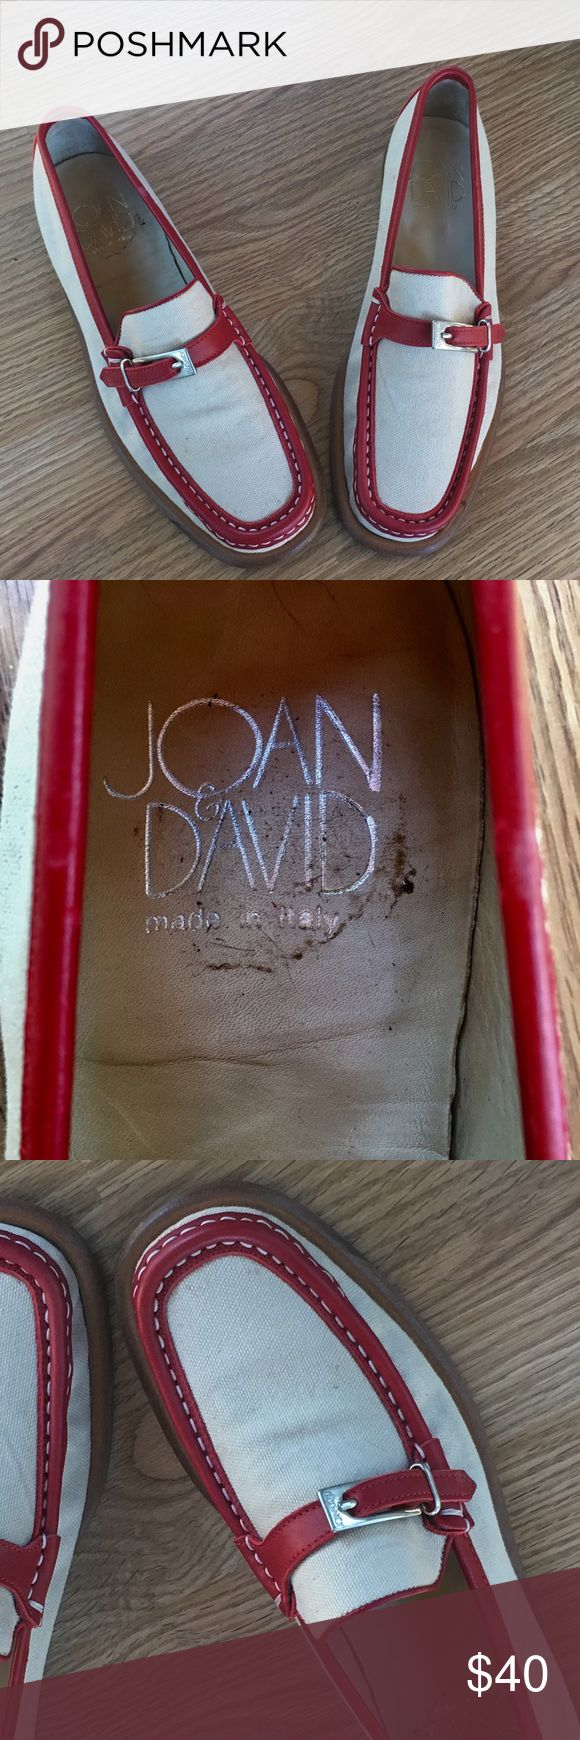 Joan & David Canvas & Red Leather Trimmed Loafers Great sporty red leather trimmed canvas Joan & David Loafers.  Cute red buckle with Signature closure.  Excellent condition! Joan & David Shoes Flats & Loafers